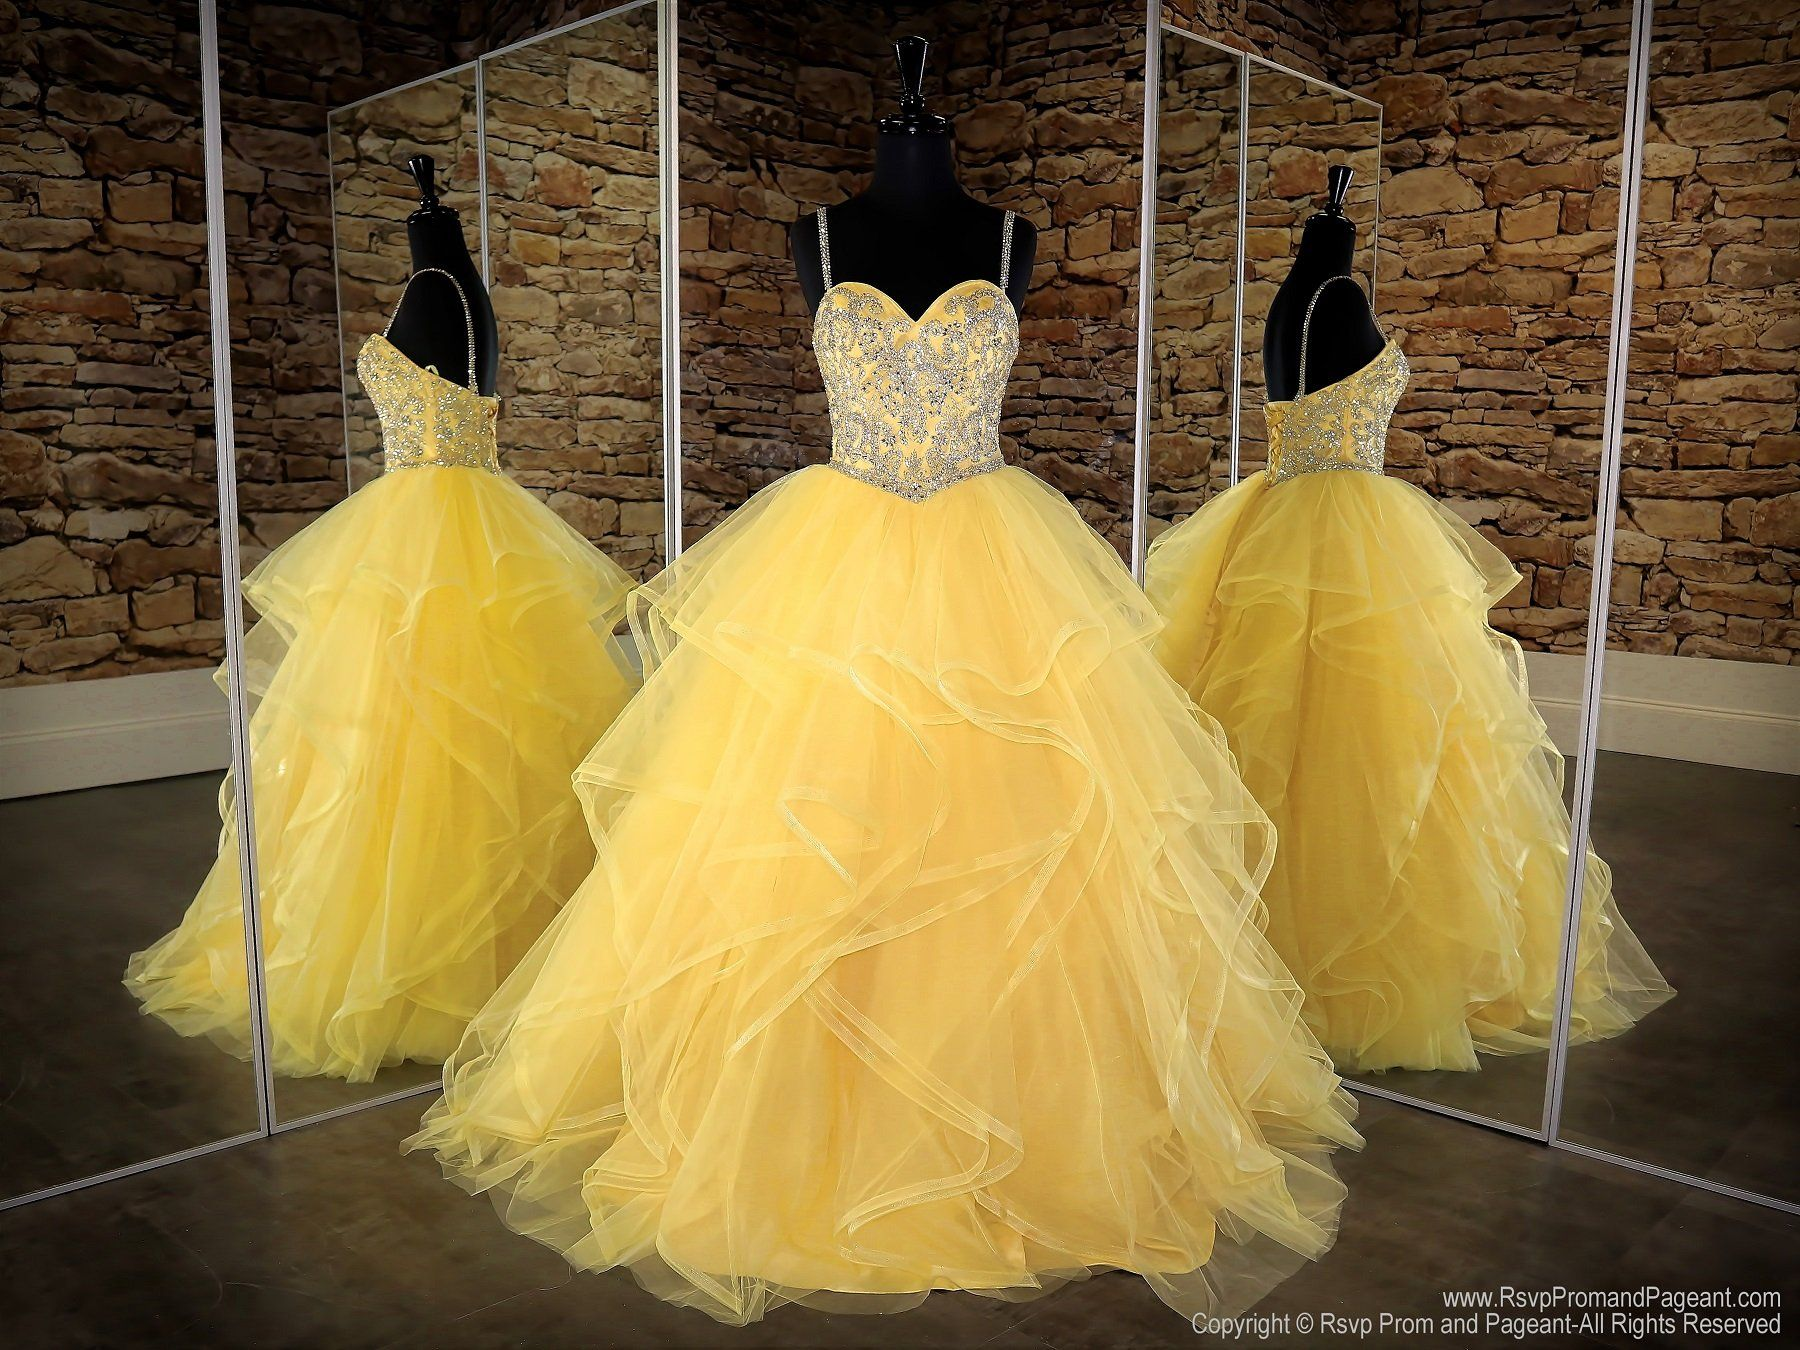 Sunflower Sweetheart Lace Up Ball Gown Ball Gowns Prom Dresses Ball Gown Sweet Sixteen Dresses [ 1350 x 1800 Pixel ]